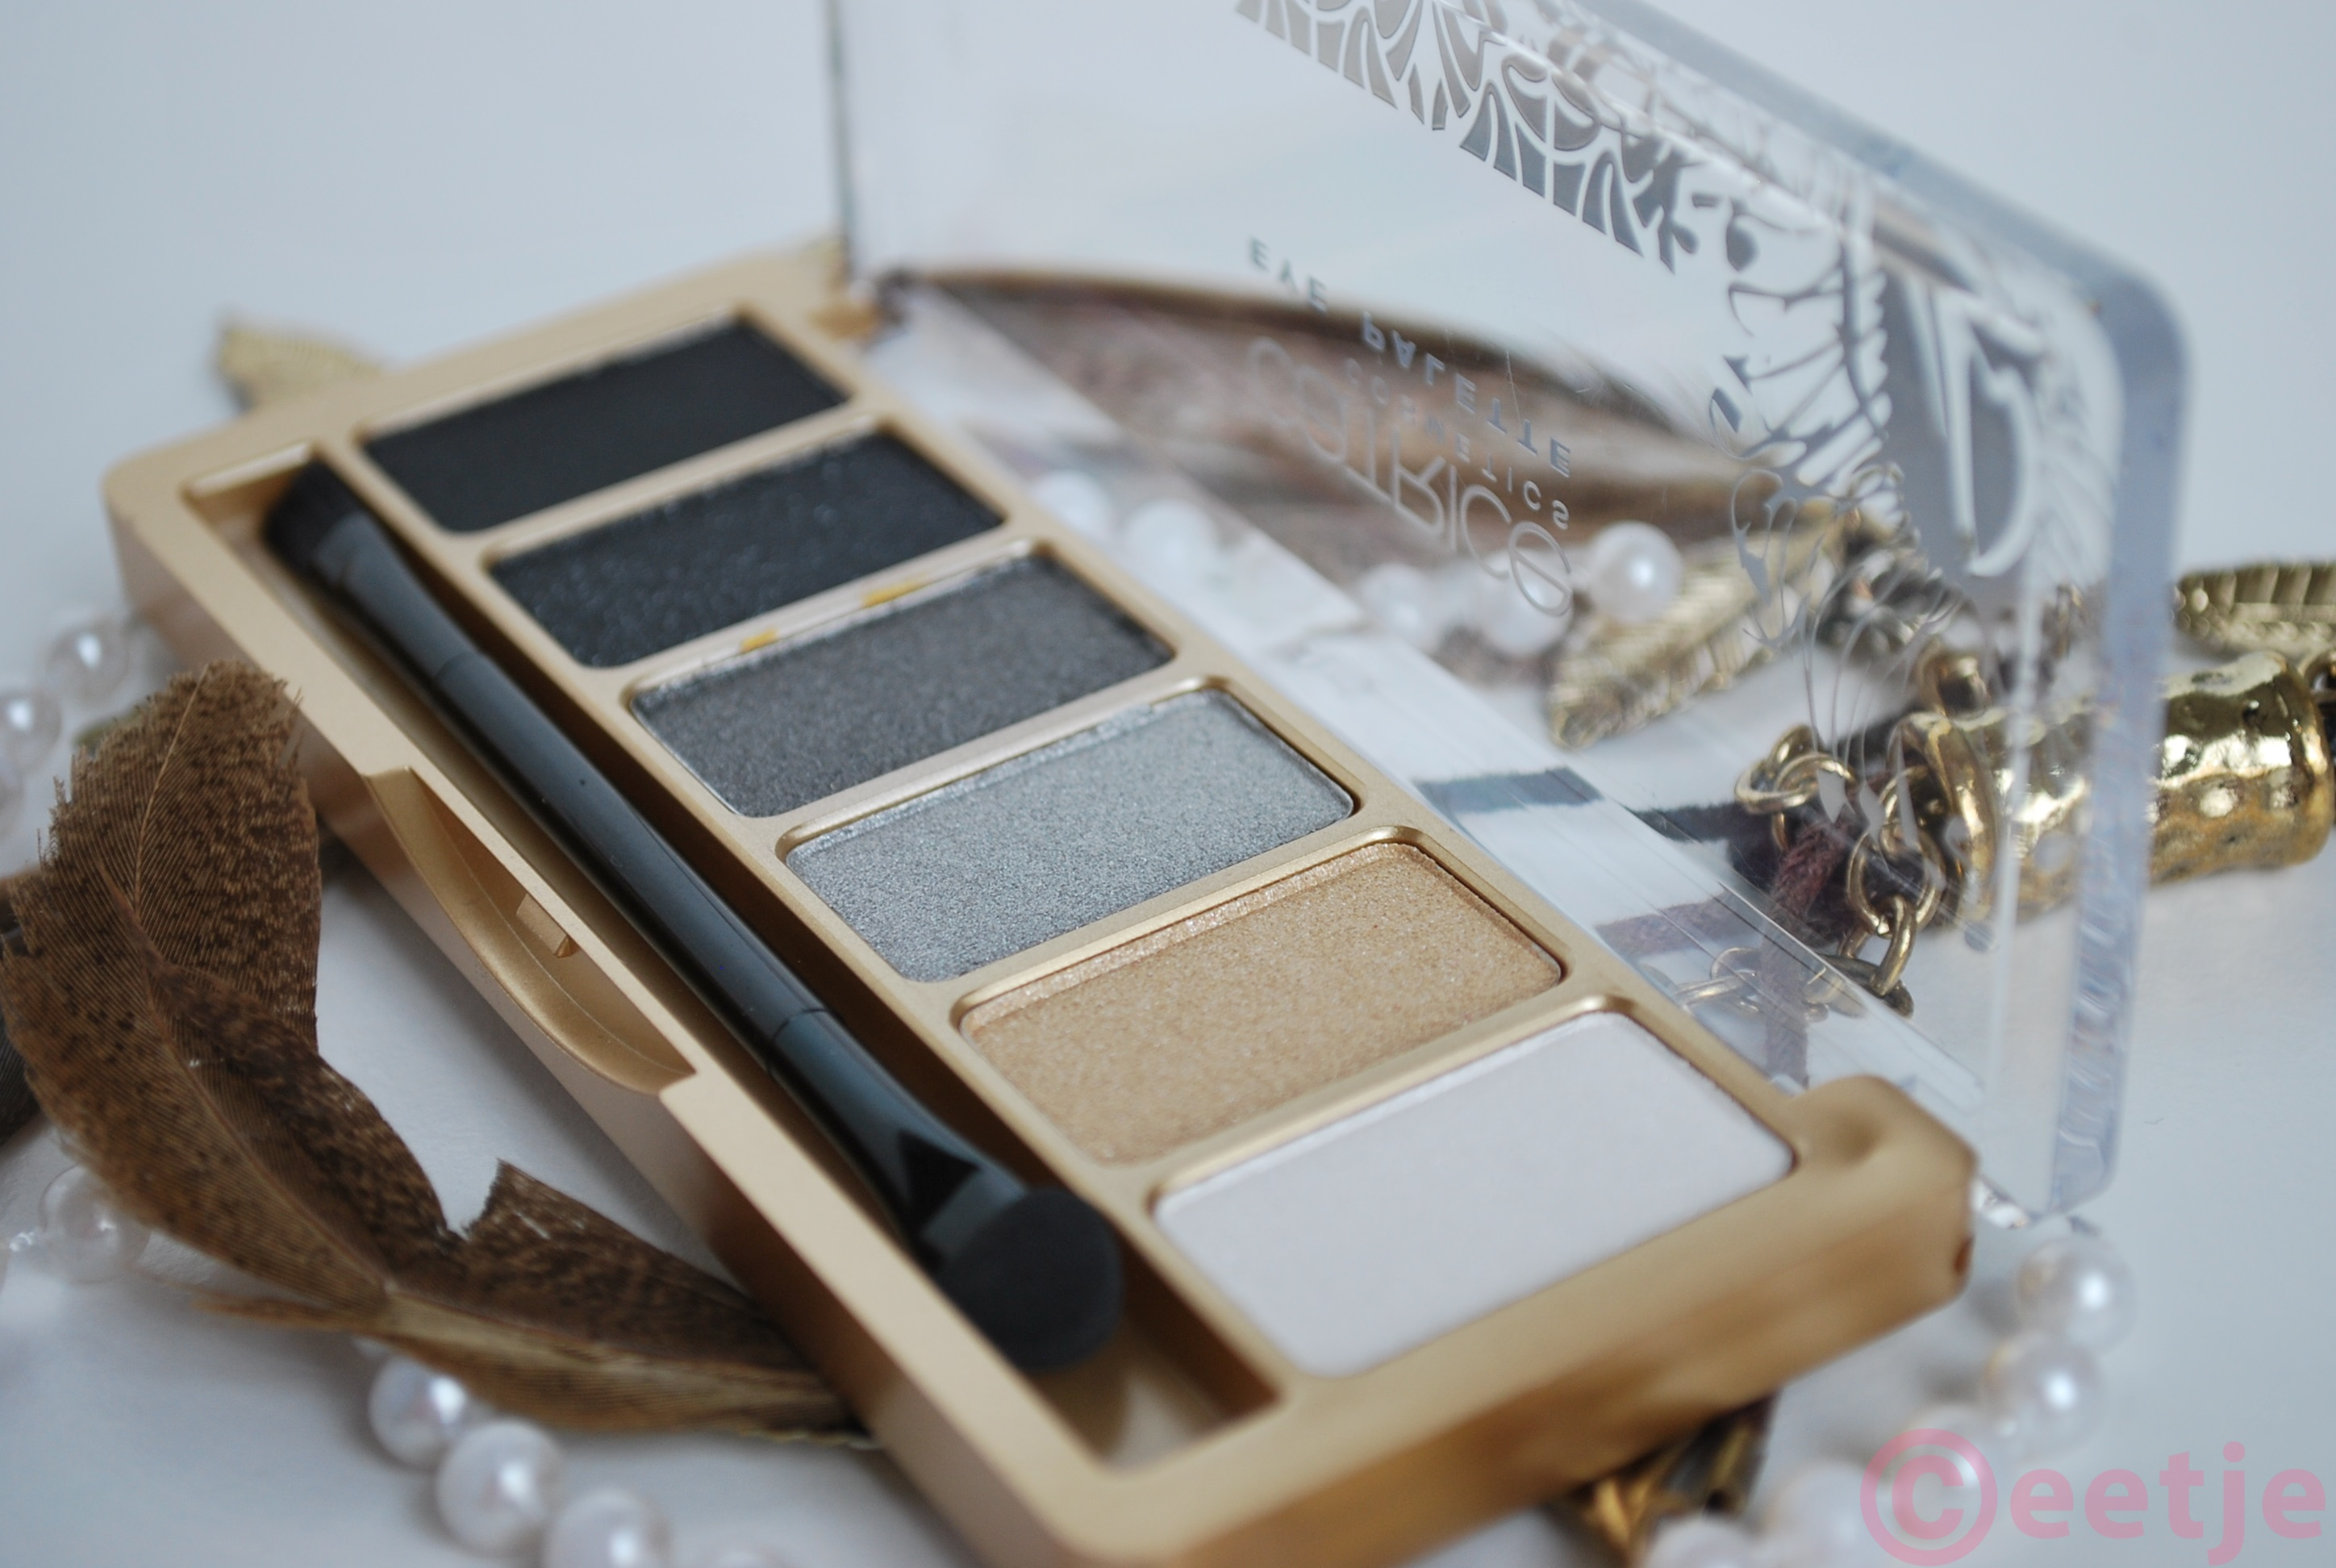 Catrice Feathers and Pearls eyeshadow palette review swatches